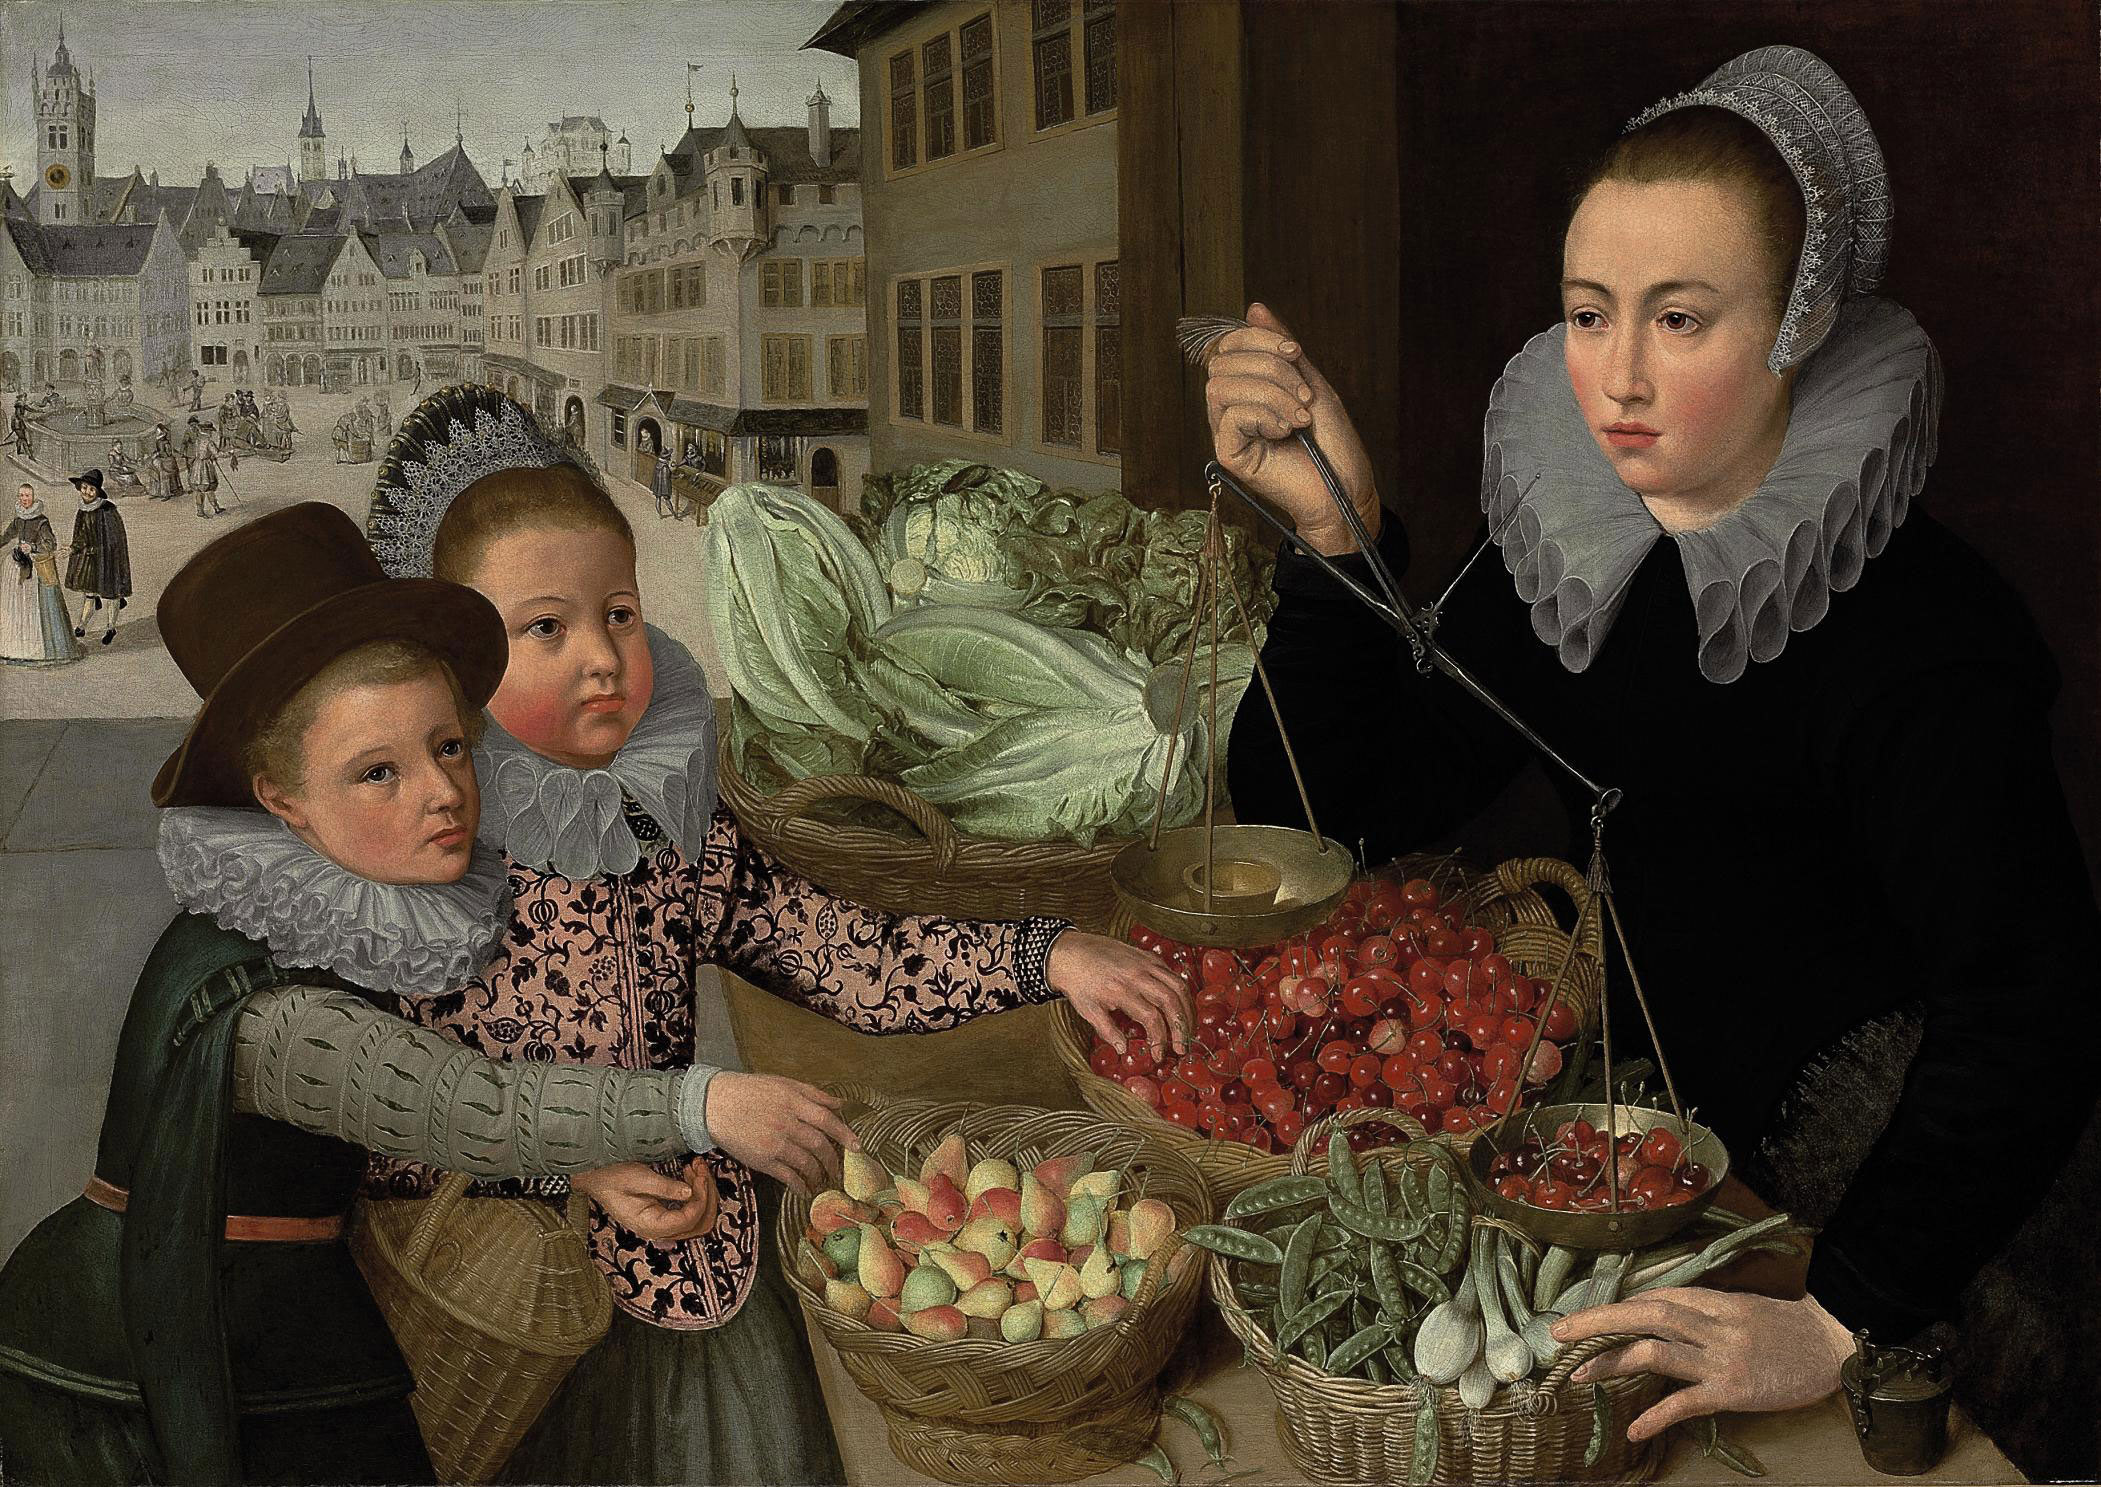 A market stand selling pears, cherries, peas, leeks and lettuce, with two elegantly-dressed children, a view of a Frankfurt beyond